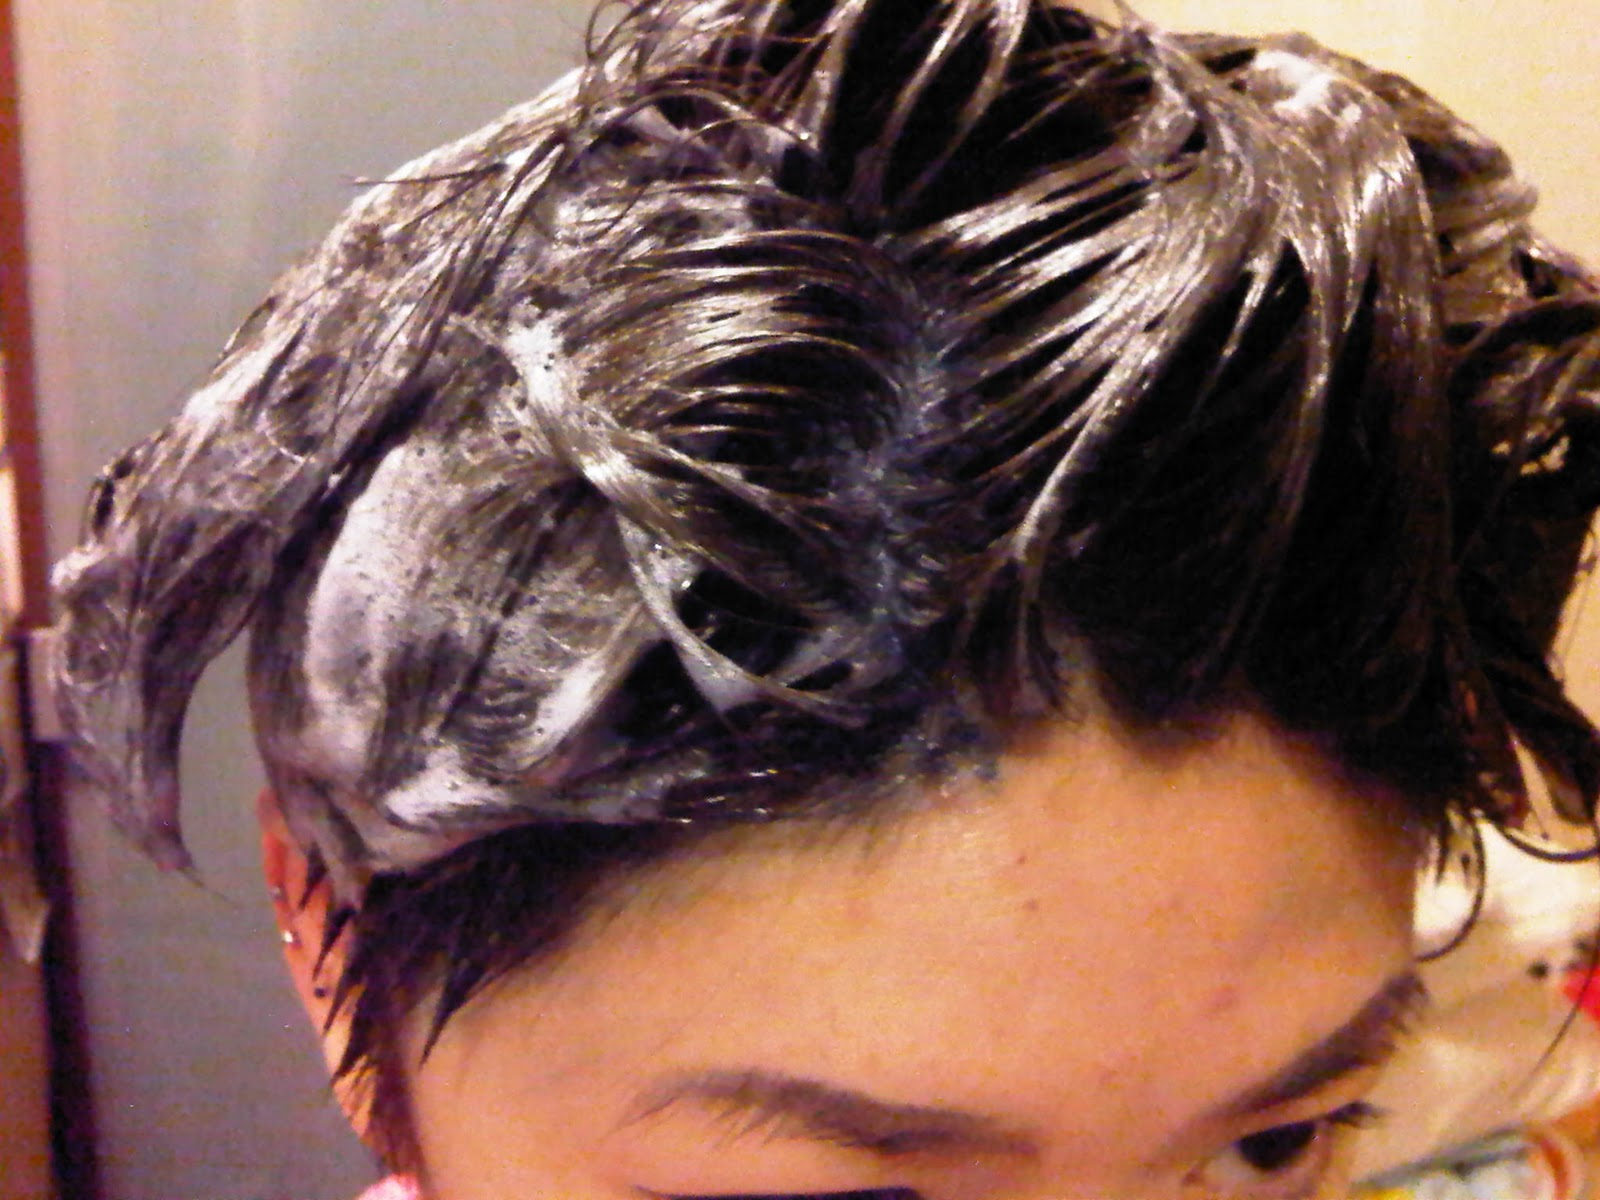 Review On Fresh Light Sugar Ash Foam Hairdye Whychristy Com